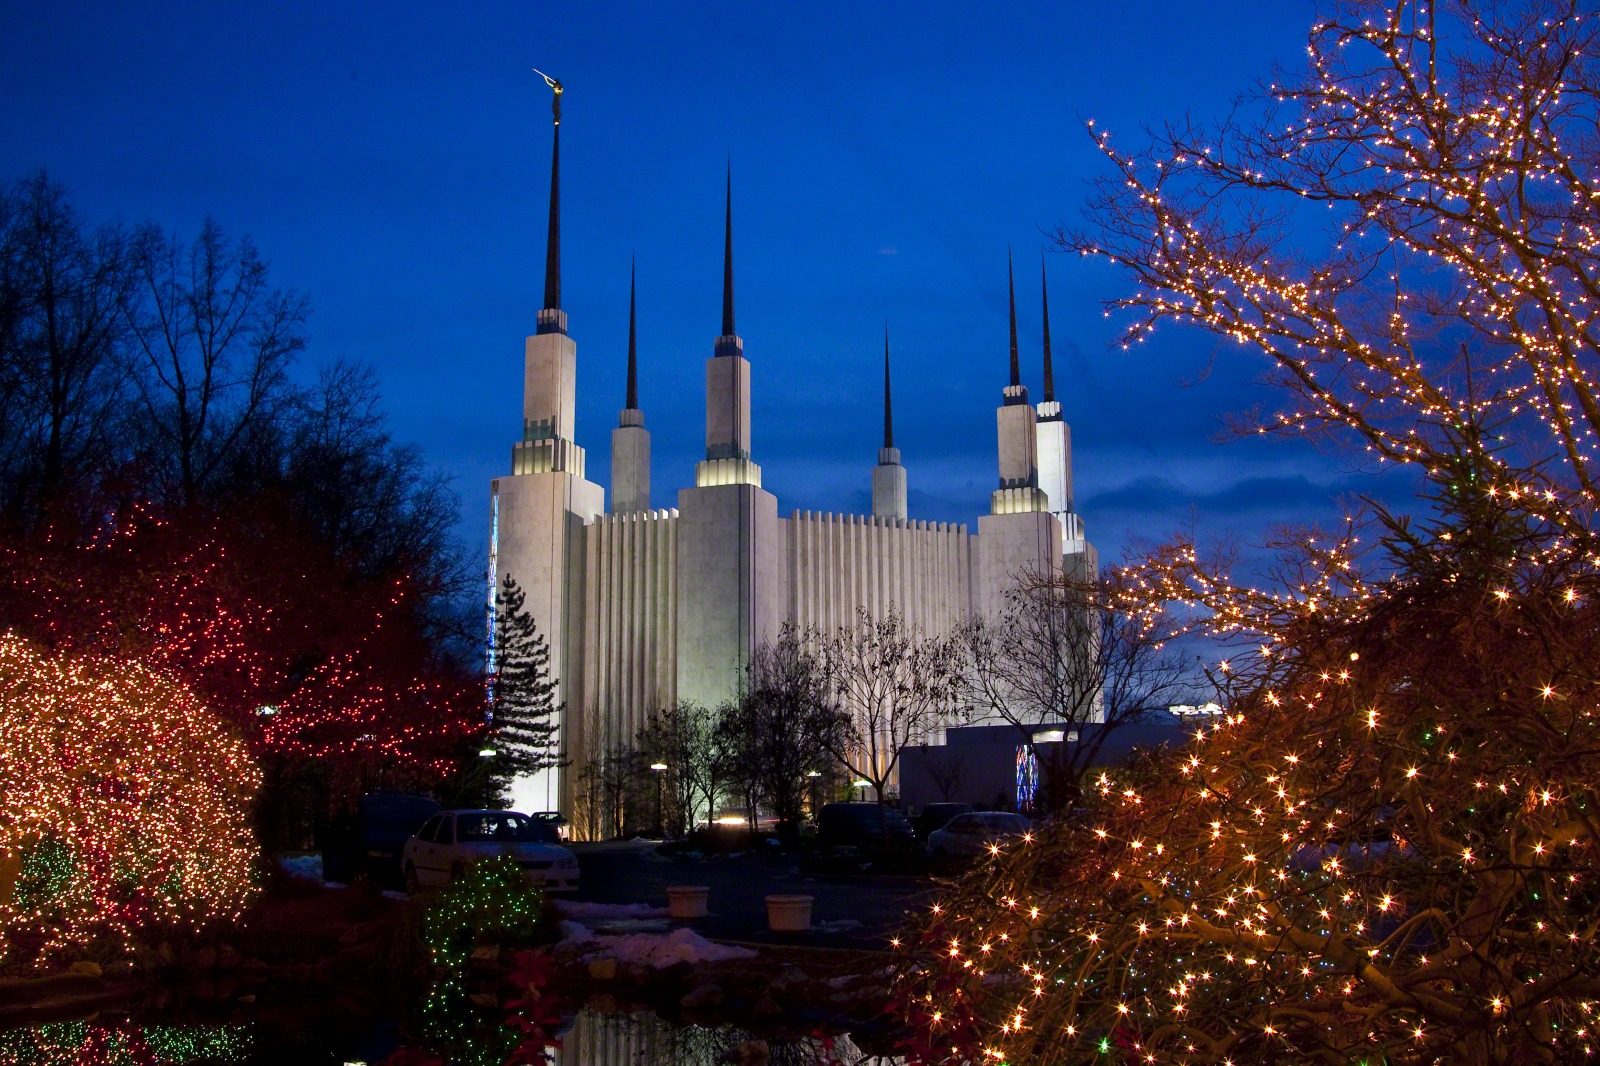 Temple Quotes Wallpaper Pc Hd Washington D C Temple At Christmas